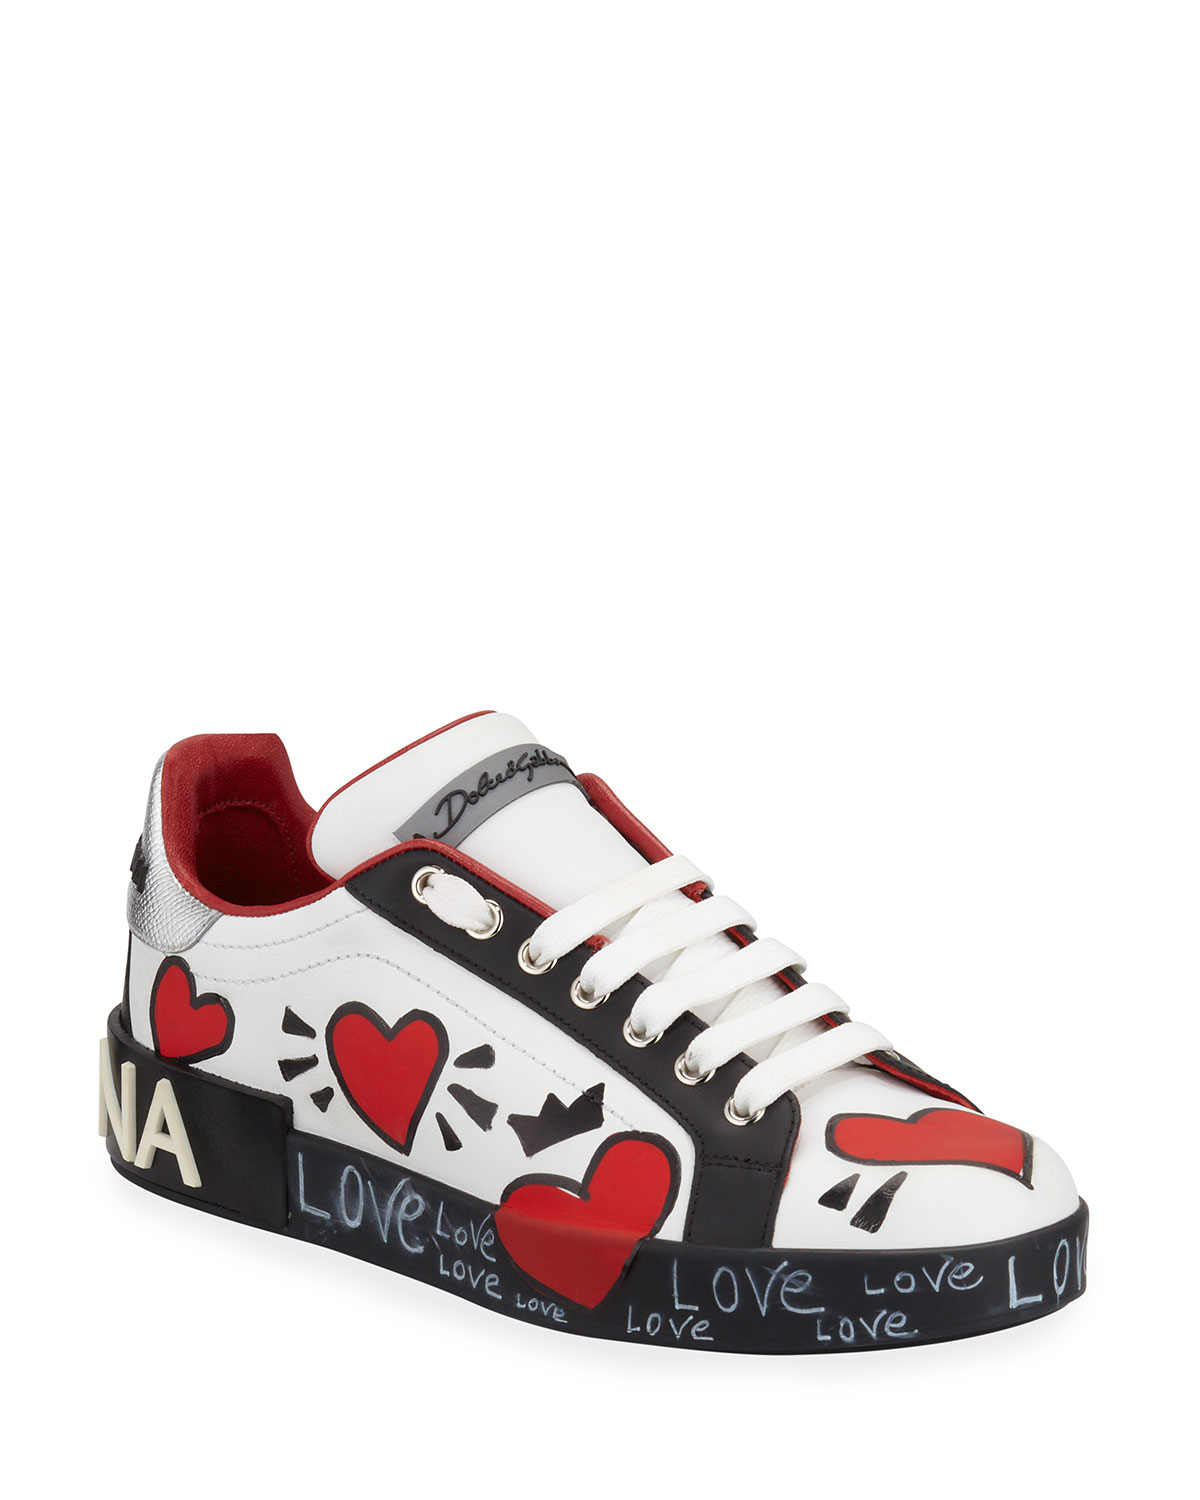 Portofino Graffiti Sneakers by Dolce & Gabbana